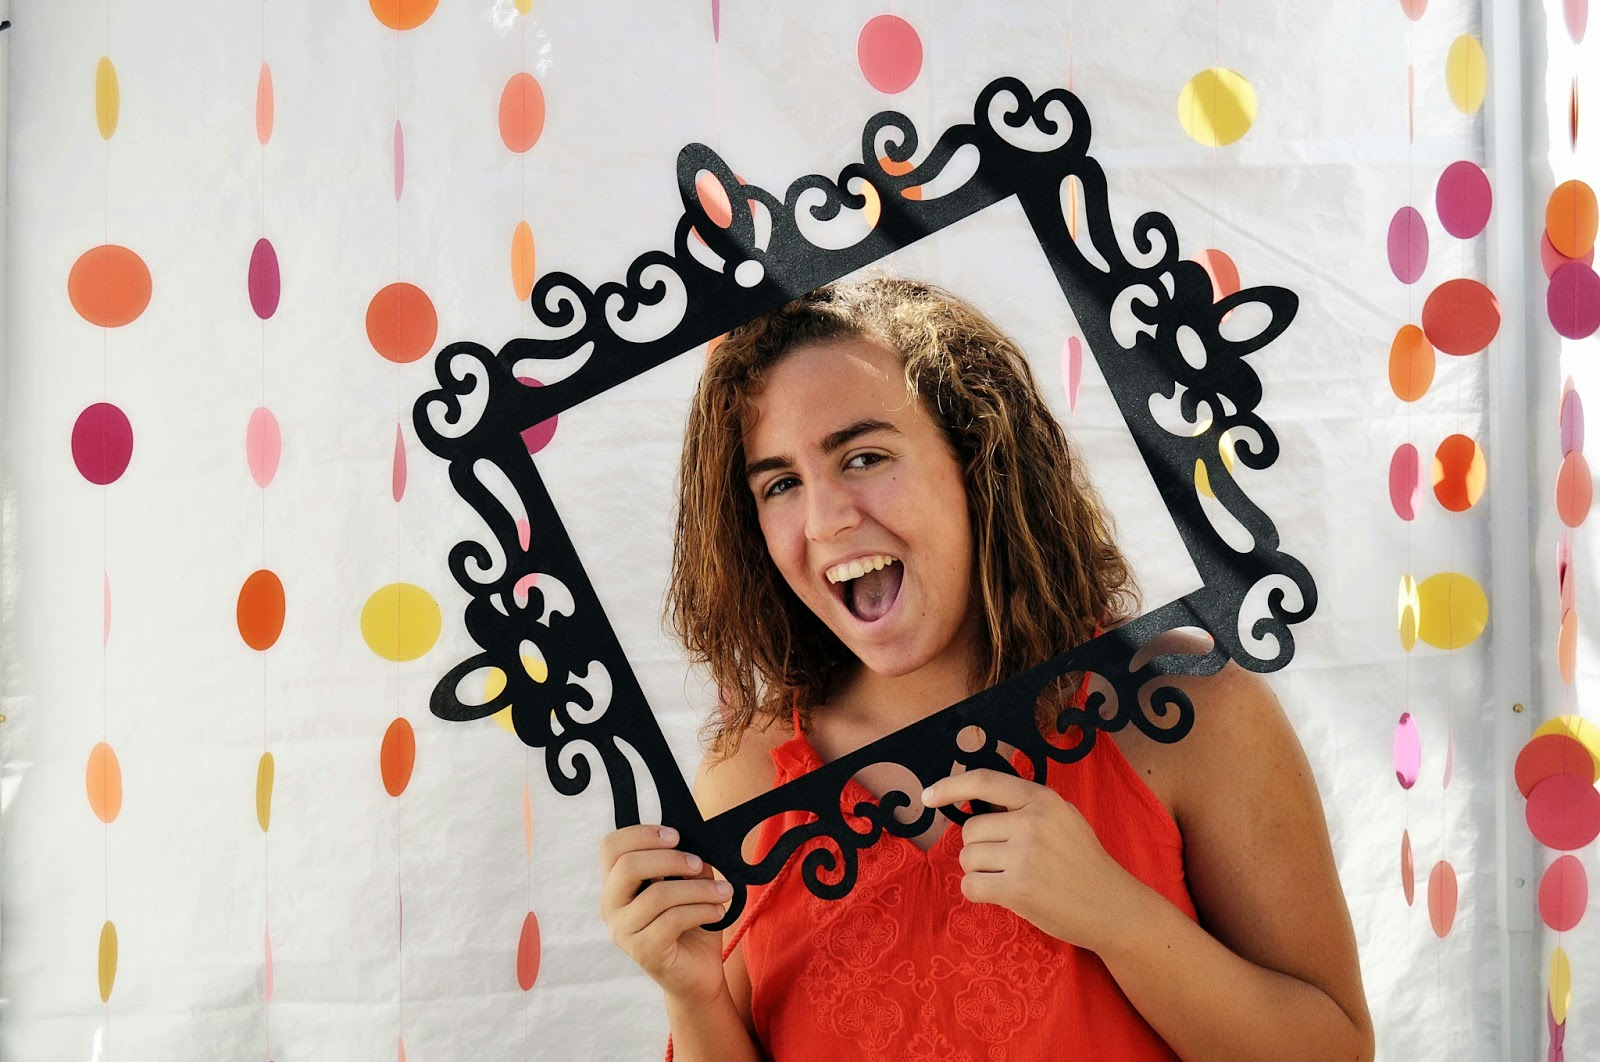 free photo booth backgrounds - photo #45